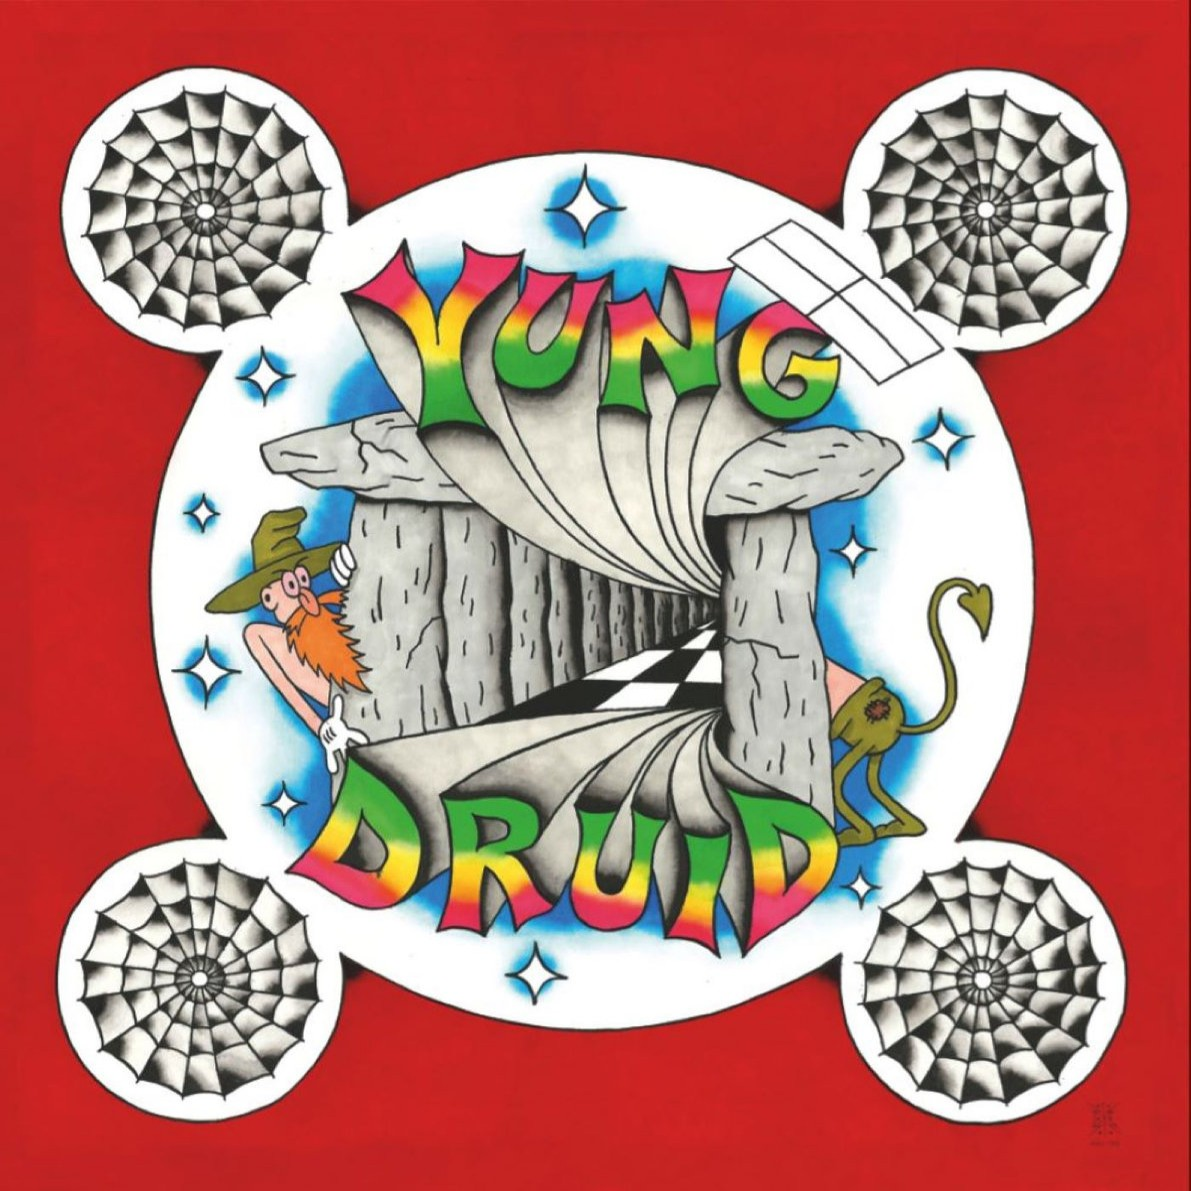 yung druid self titled